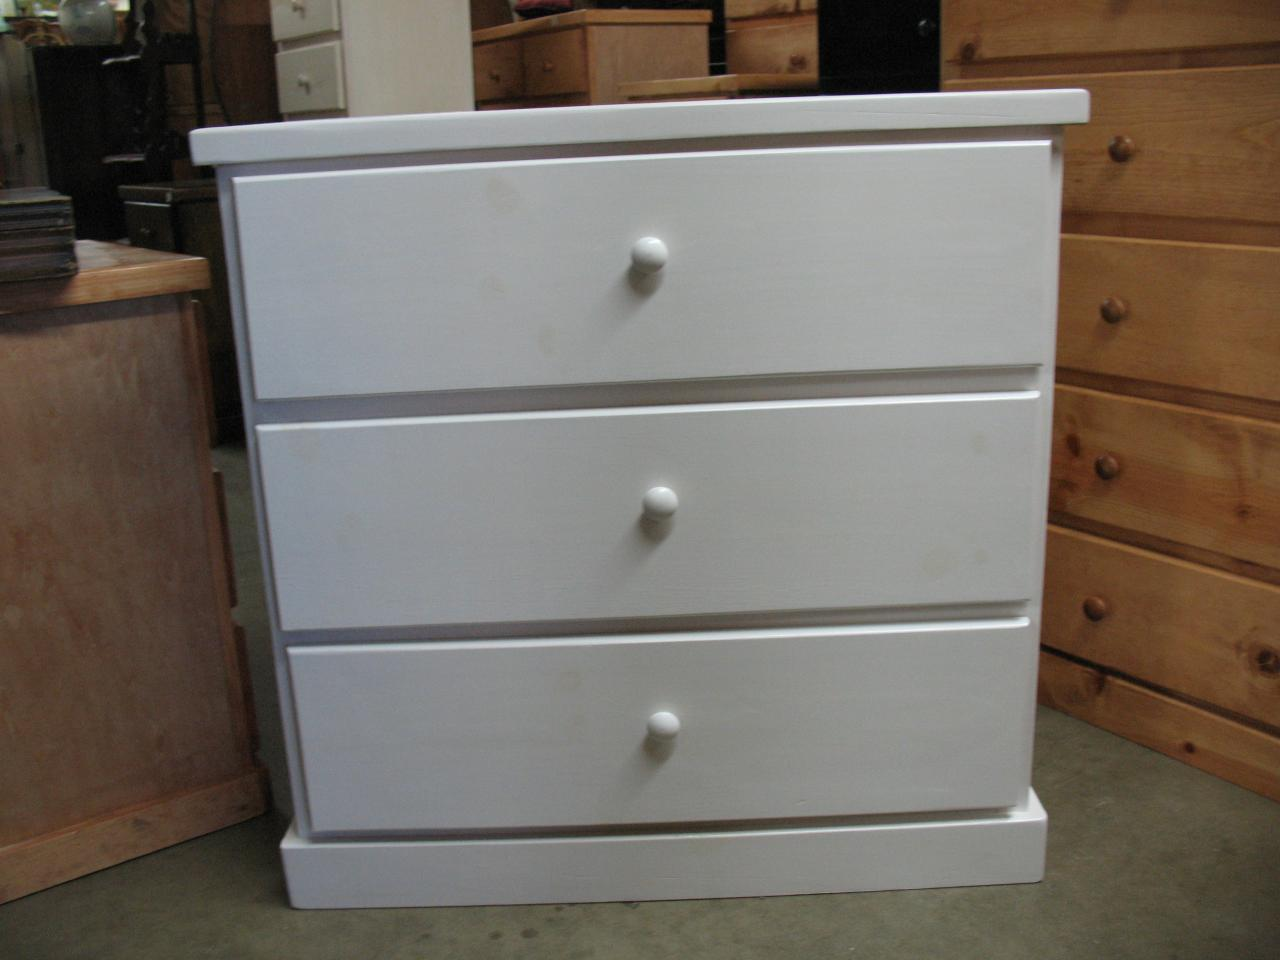 ikea corner shop to sterling white dressers kmart size koppang malm storage large chic dresser zq also marvellous hemnes review off